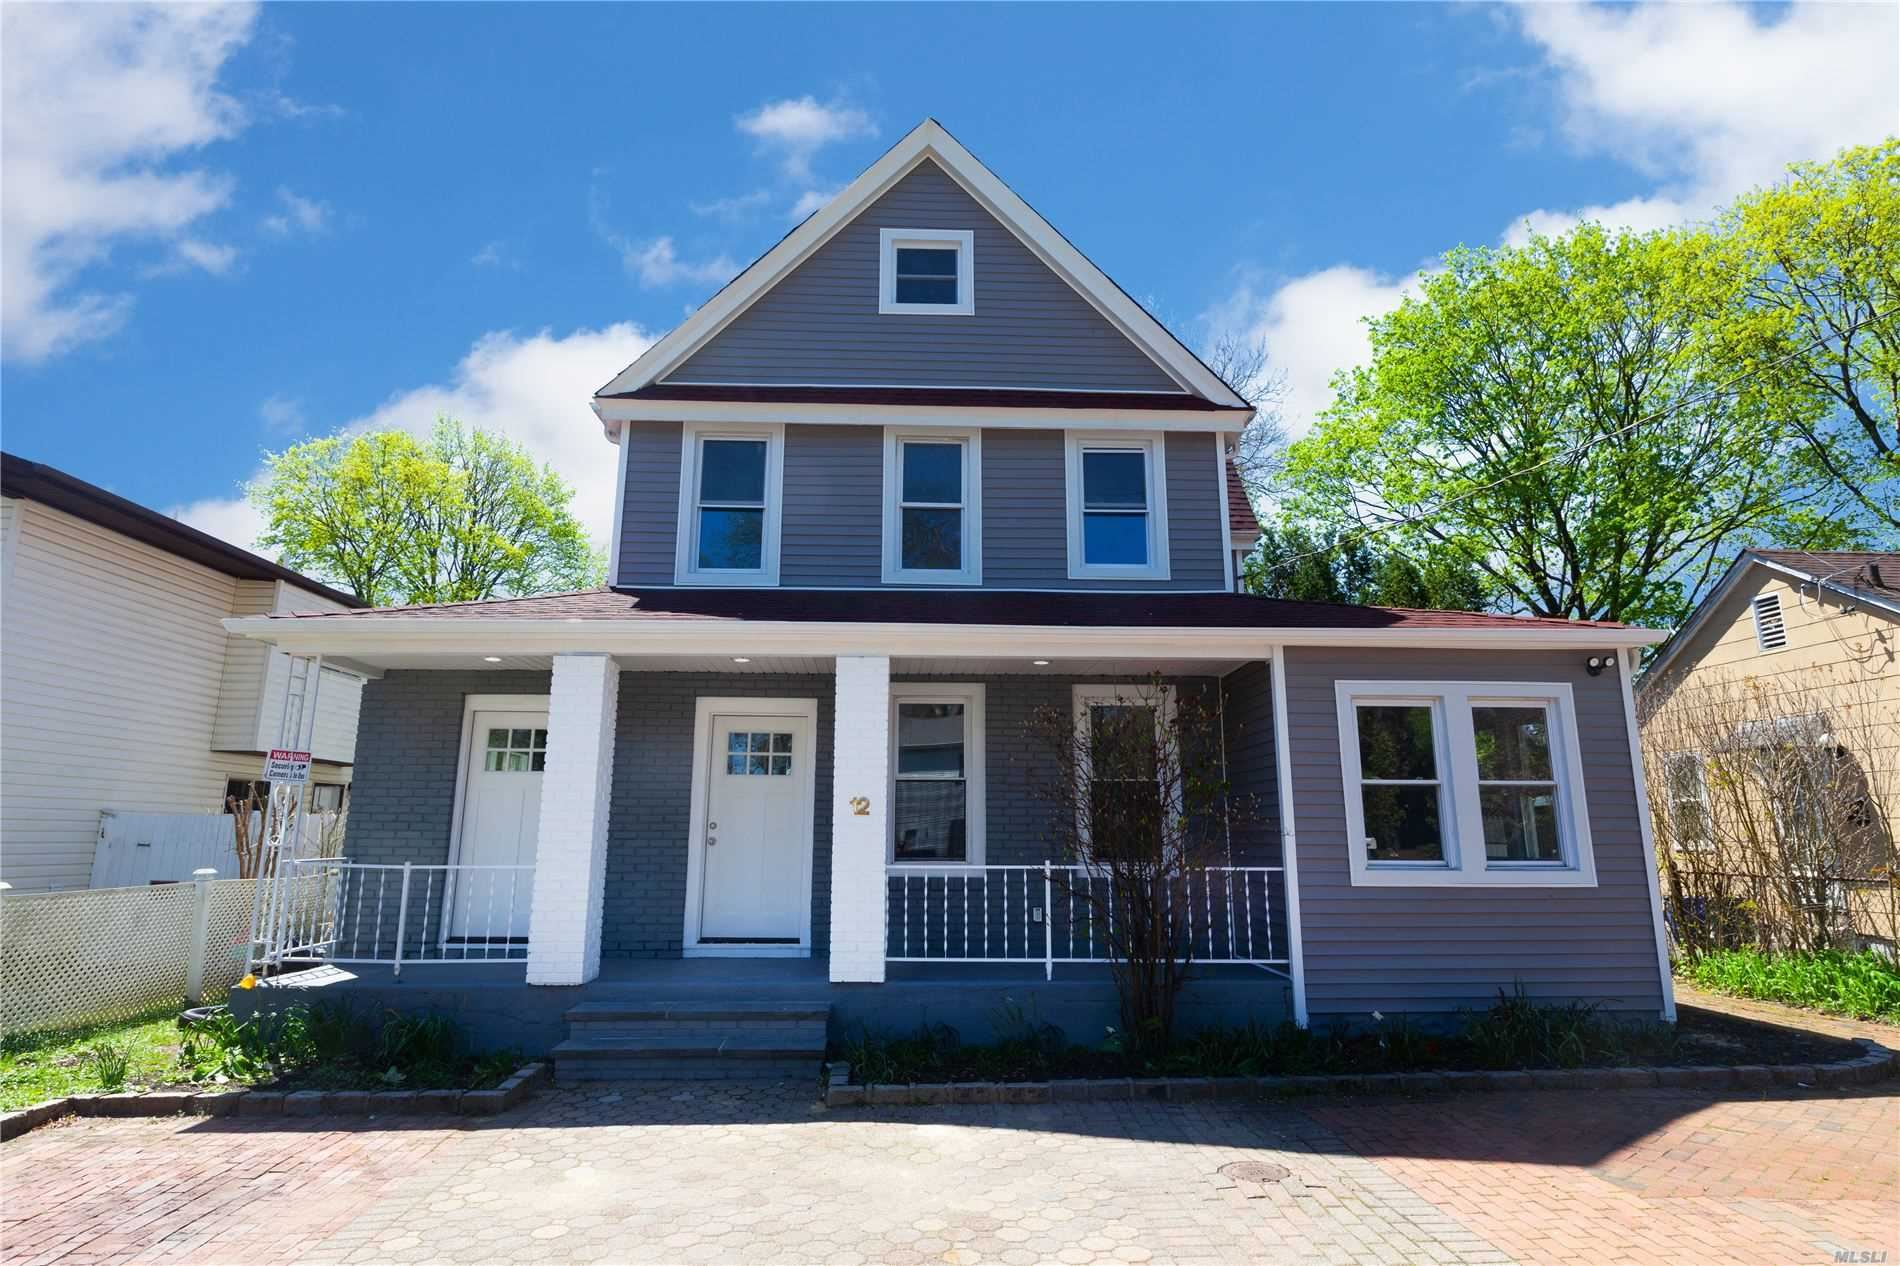 12 E 22 Street, Huntington Station, NY 11746 - MLS#: 3213397